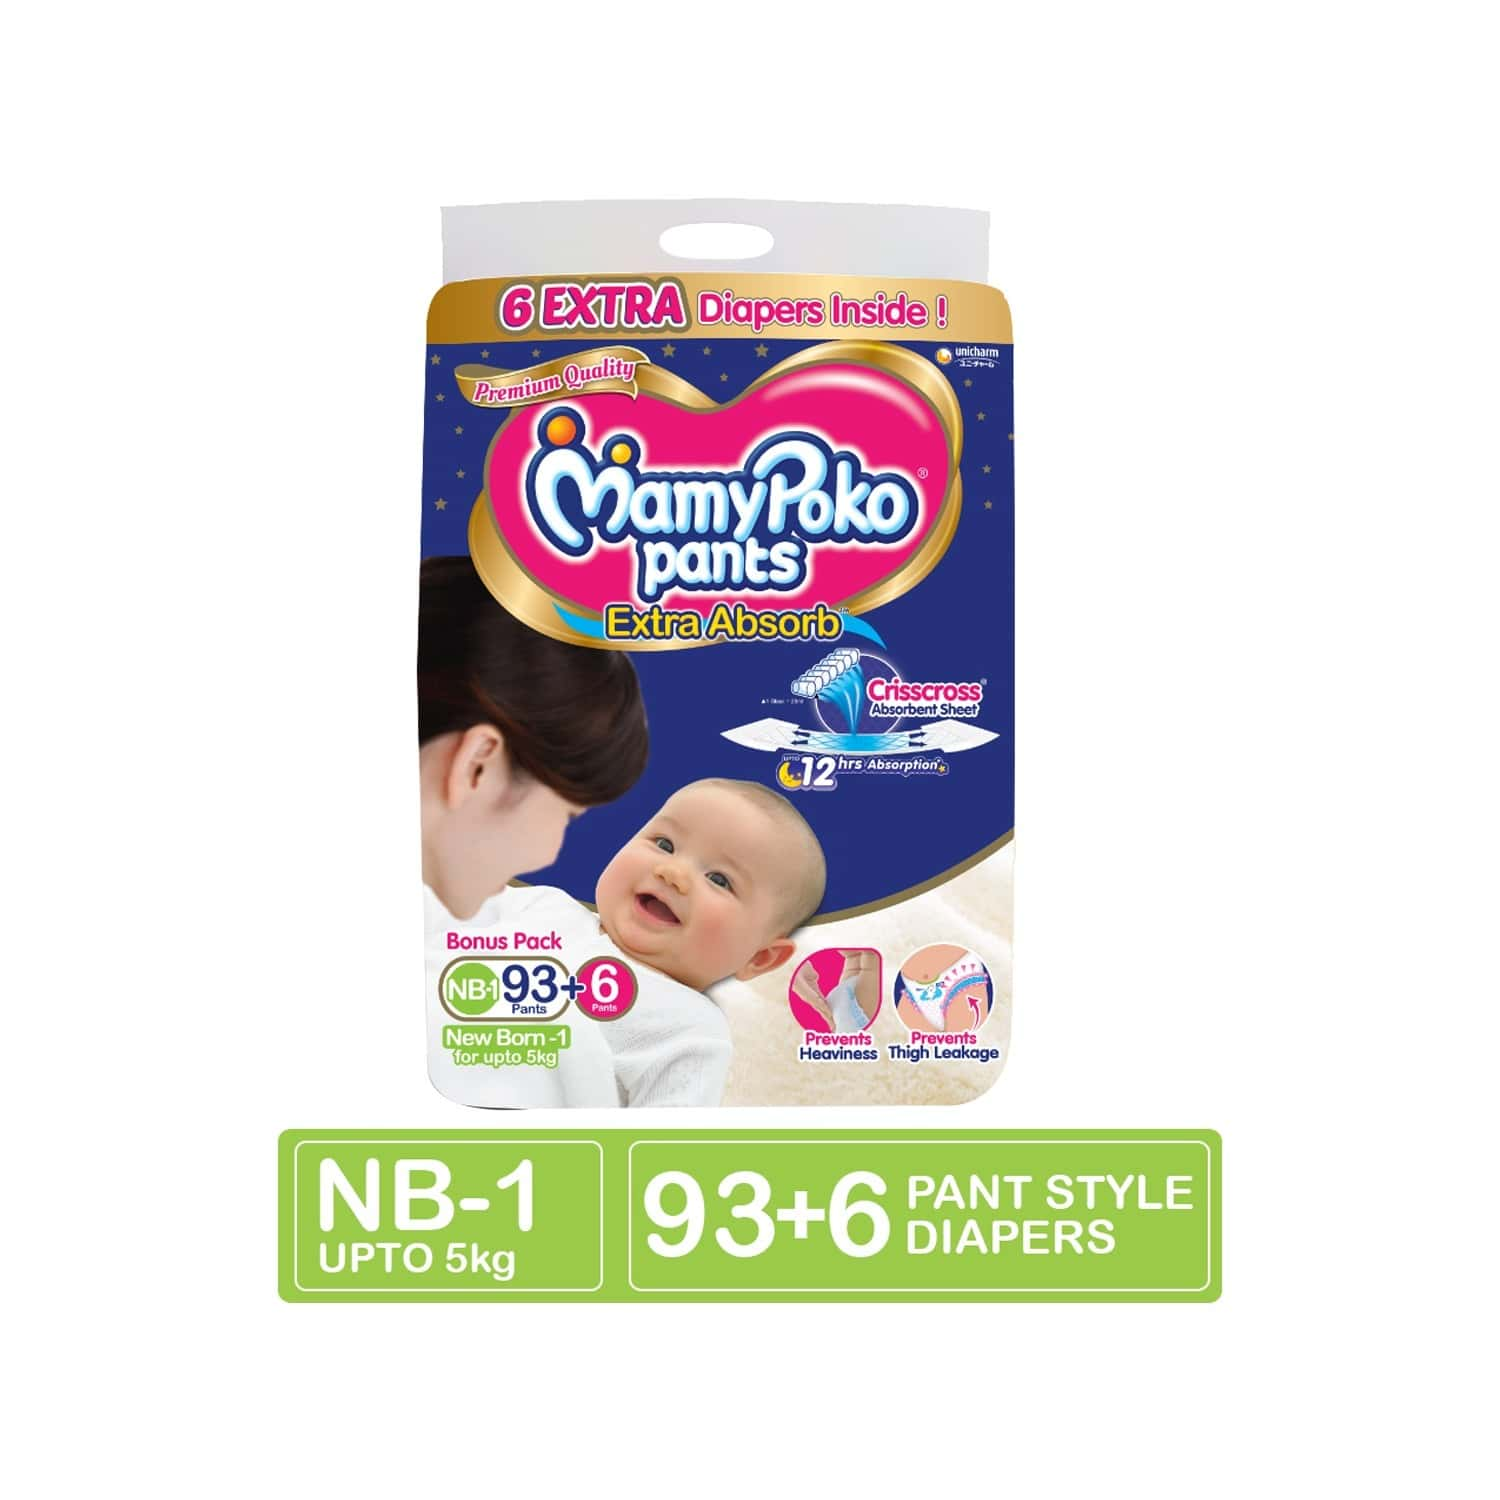 Mamypoko Pants Extra Absorb Diaper For New Born, Suitable For Up To 5 Kg Of New Born - Pack Of 99 Diapers